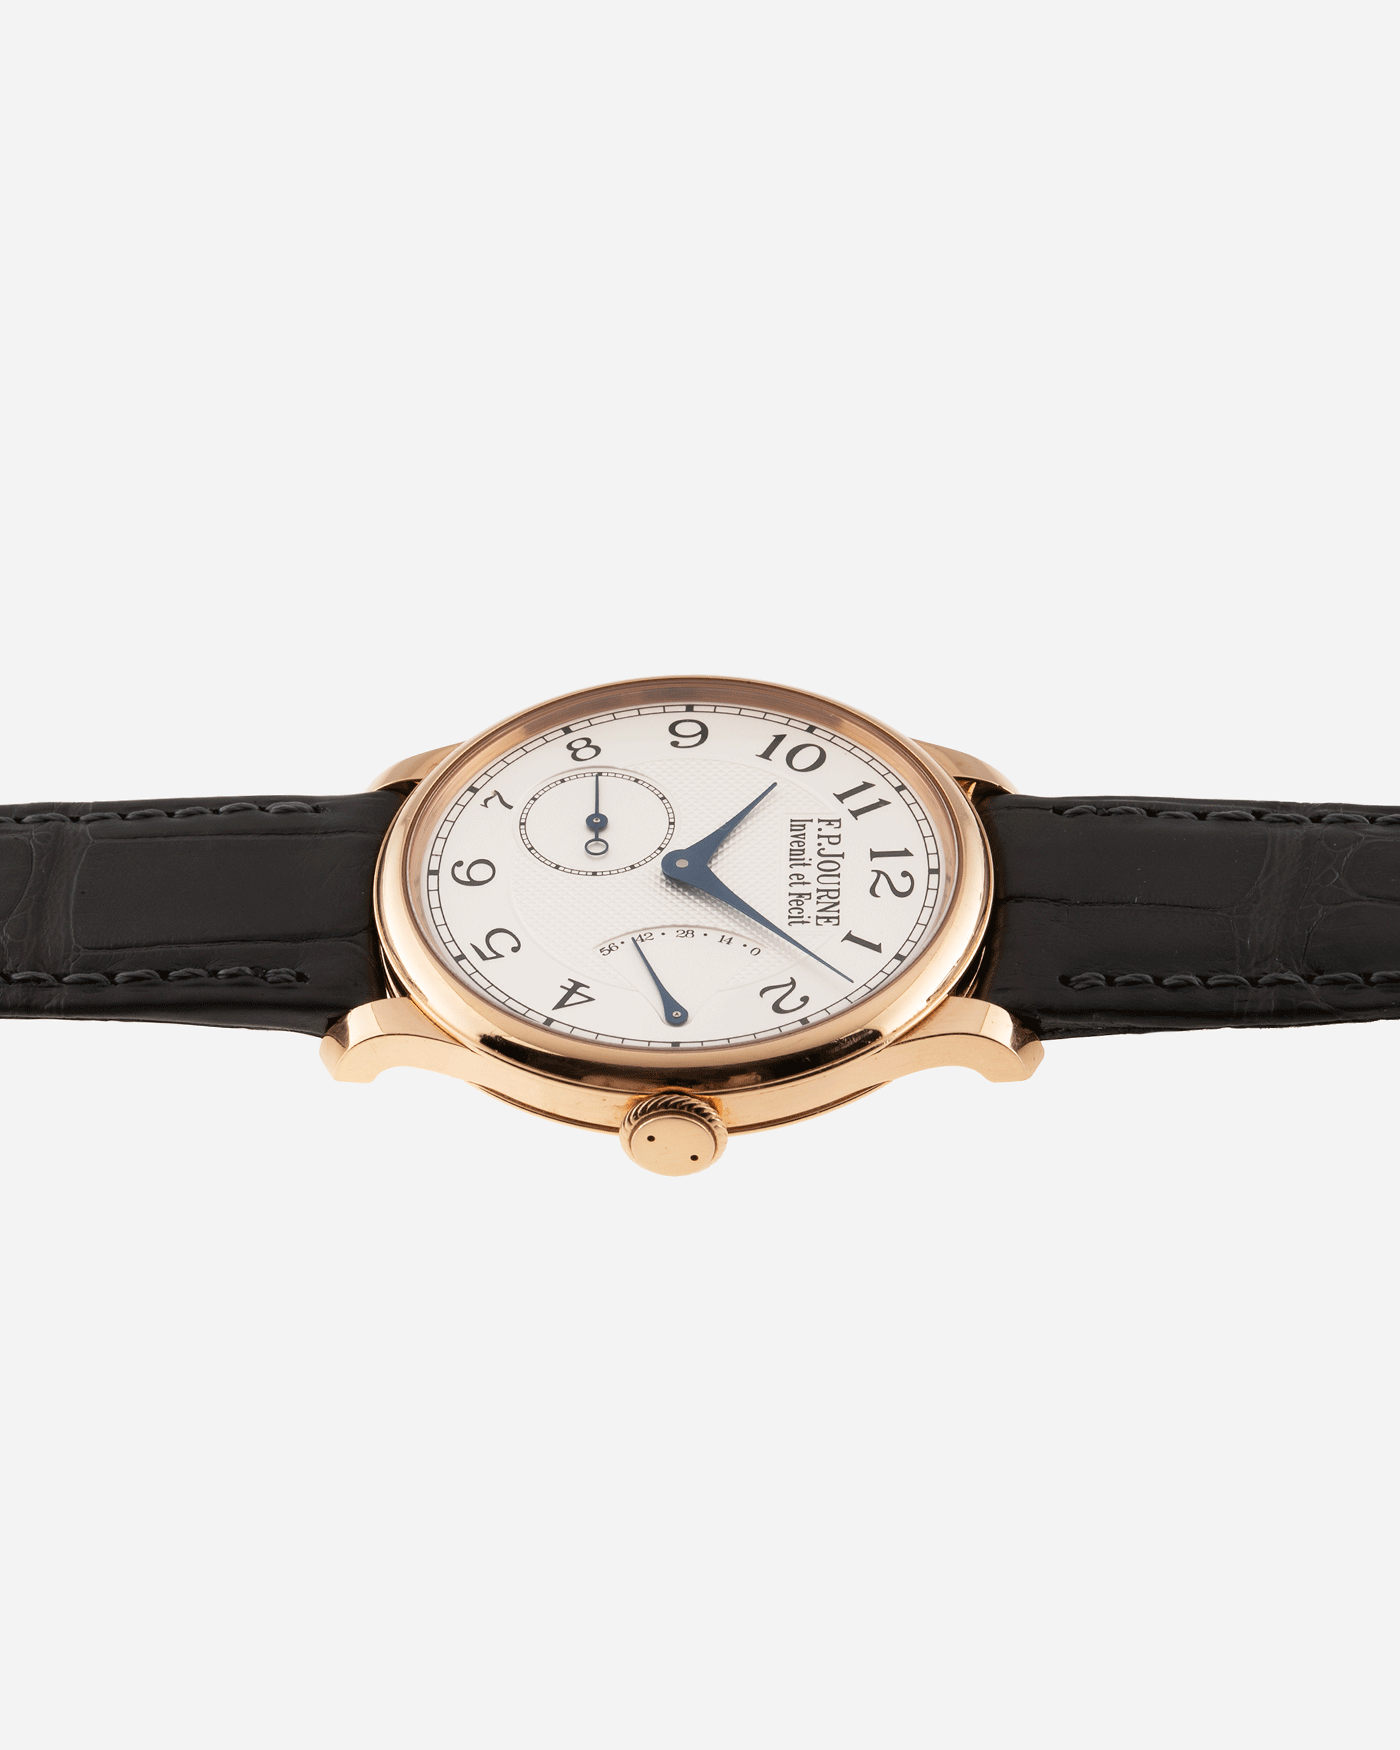 Brand: F.P. Journe Year: 2009 Model: Chronometre Souverain Material: 18k Rose Gold Movement: in-house FPJ calibre 1304 Case Diameter: 38mm Bracelet/Strap: F.P. Journe Grey Alligator and 18k Rose Gold Tang Buckle